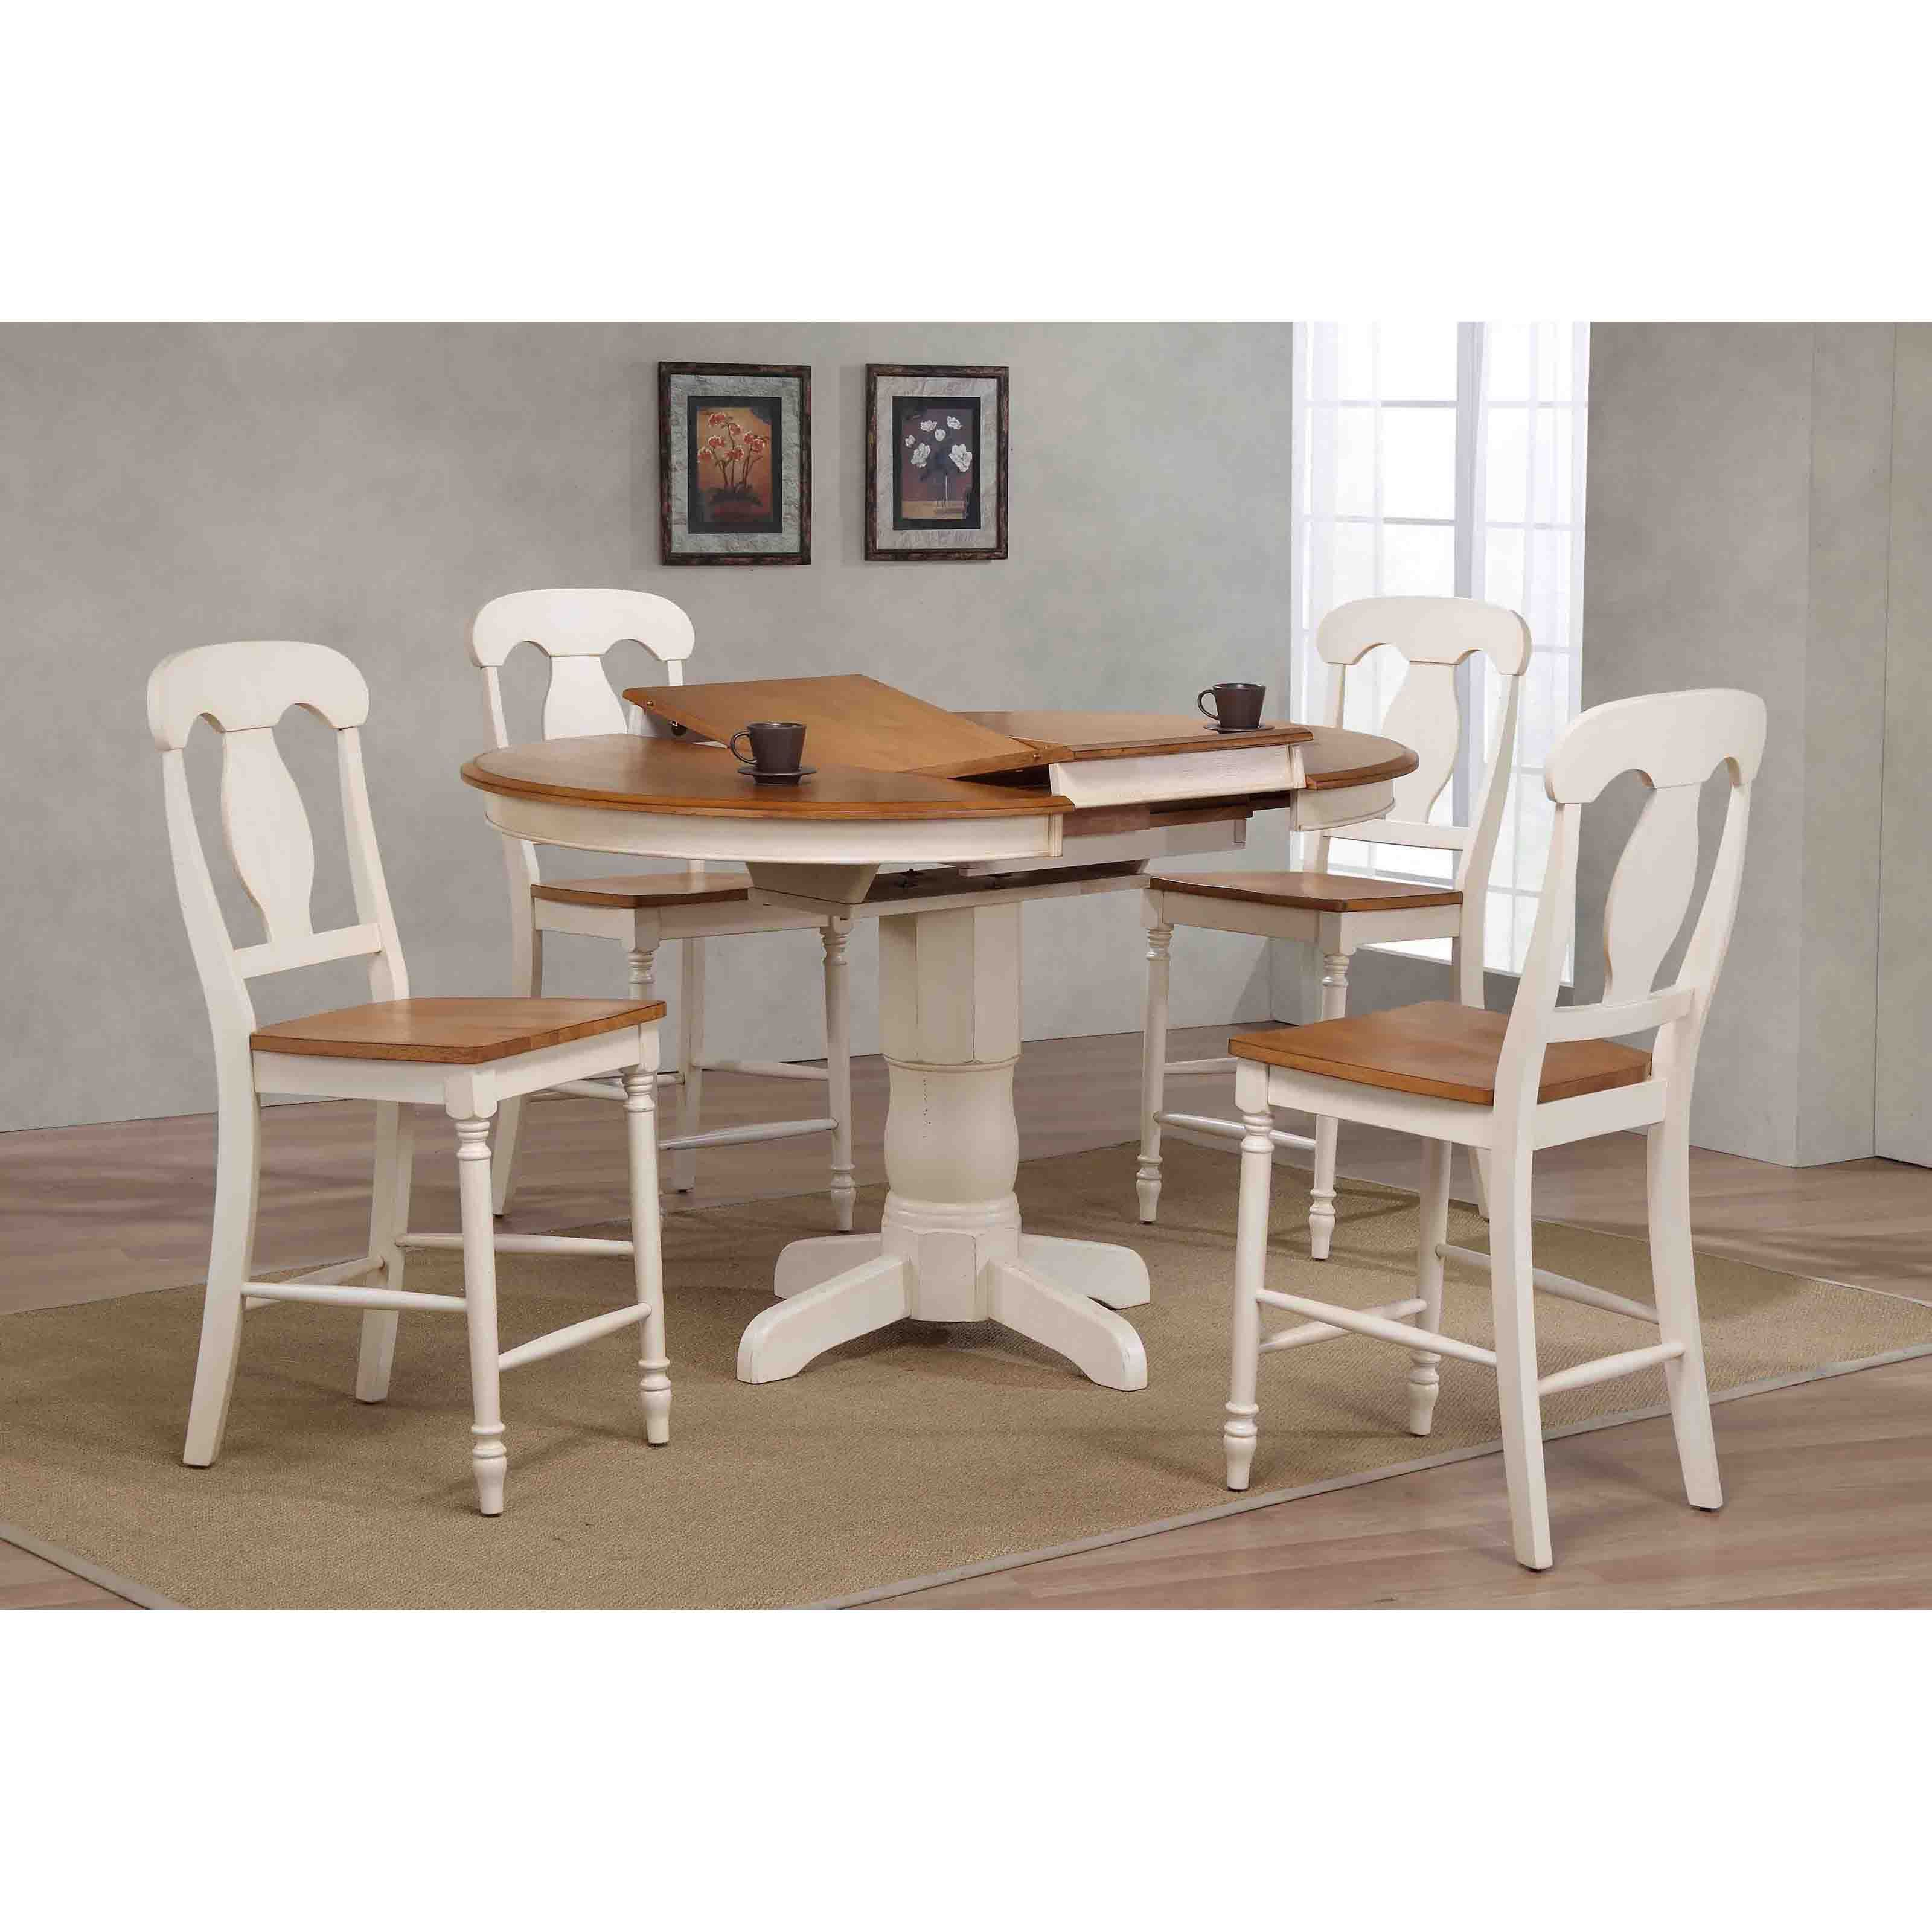 Iconic Furniture Napoleon Back 5 Piece Round Counter Height Dining